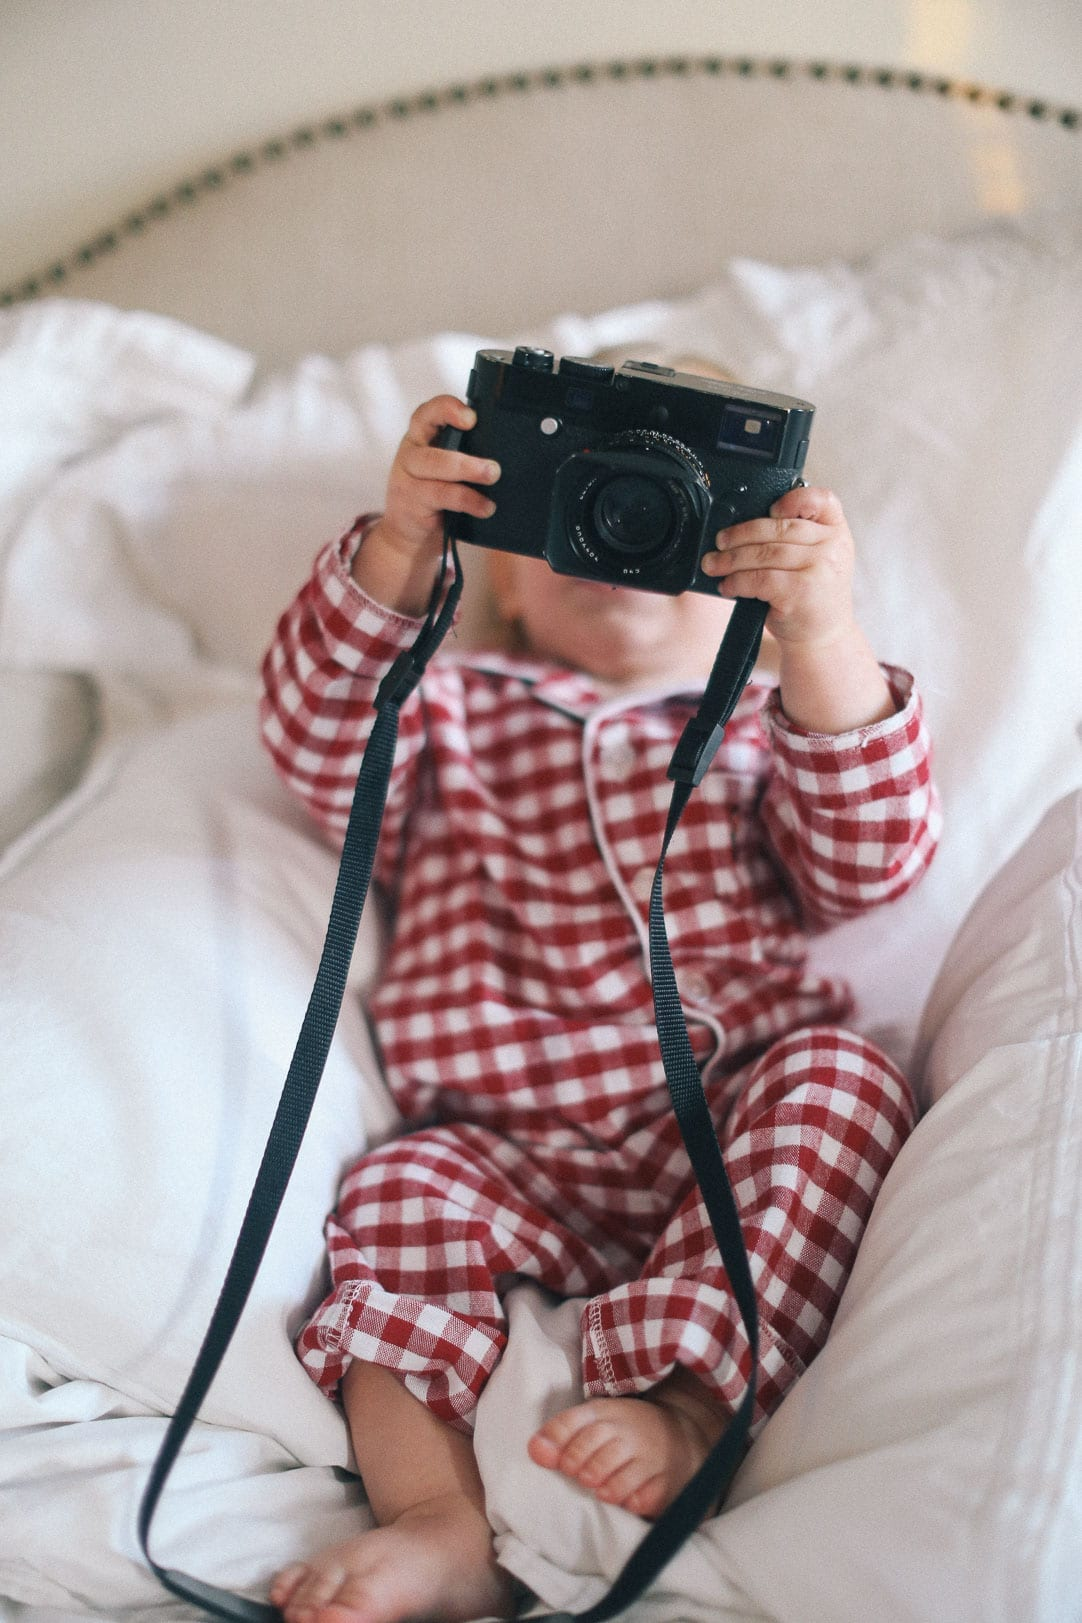 All Our Best Photography Tips & Tricks - baby wearing red checked pajamas holding a Leica camera in bed